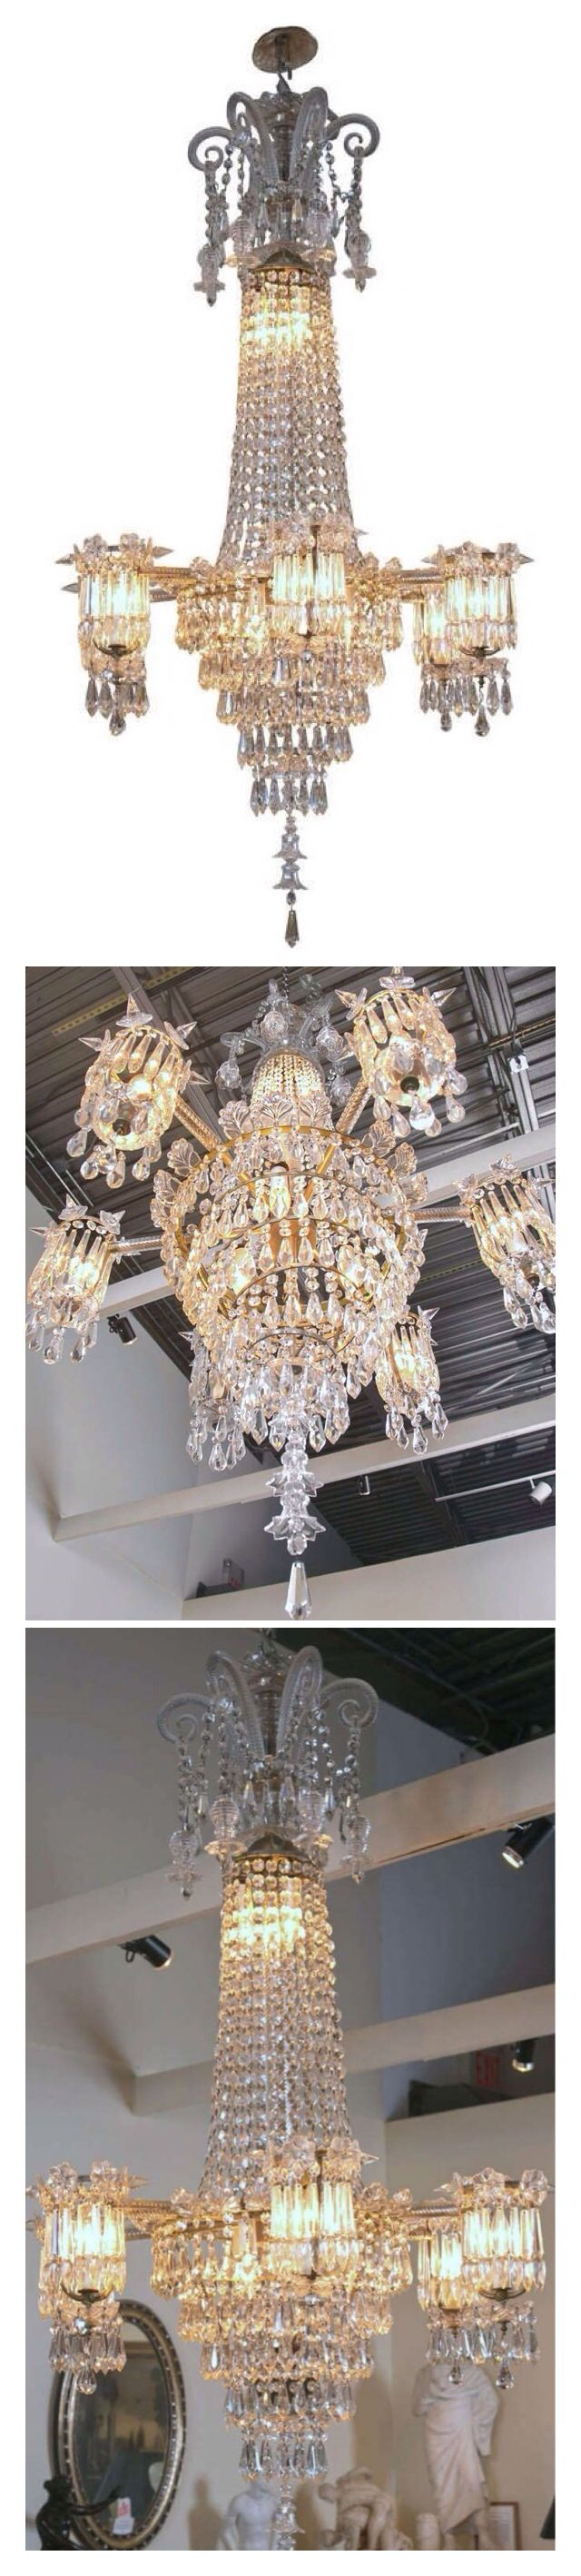 259 best light the night fantastic images on pinterest english william iv early 19th century crystal chandelier 1stdibs arubaitofo Gallery